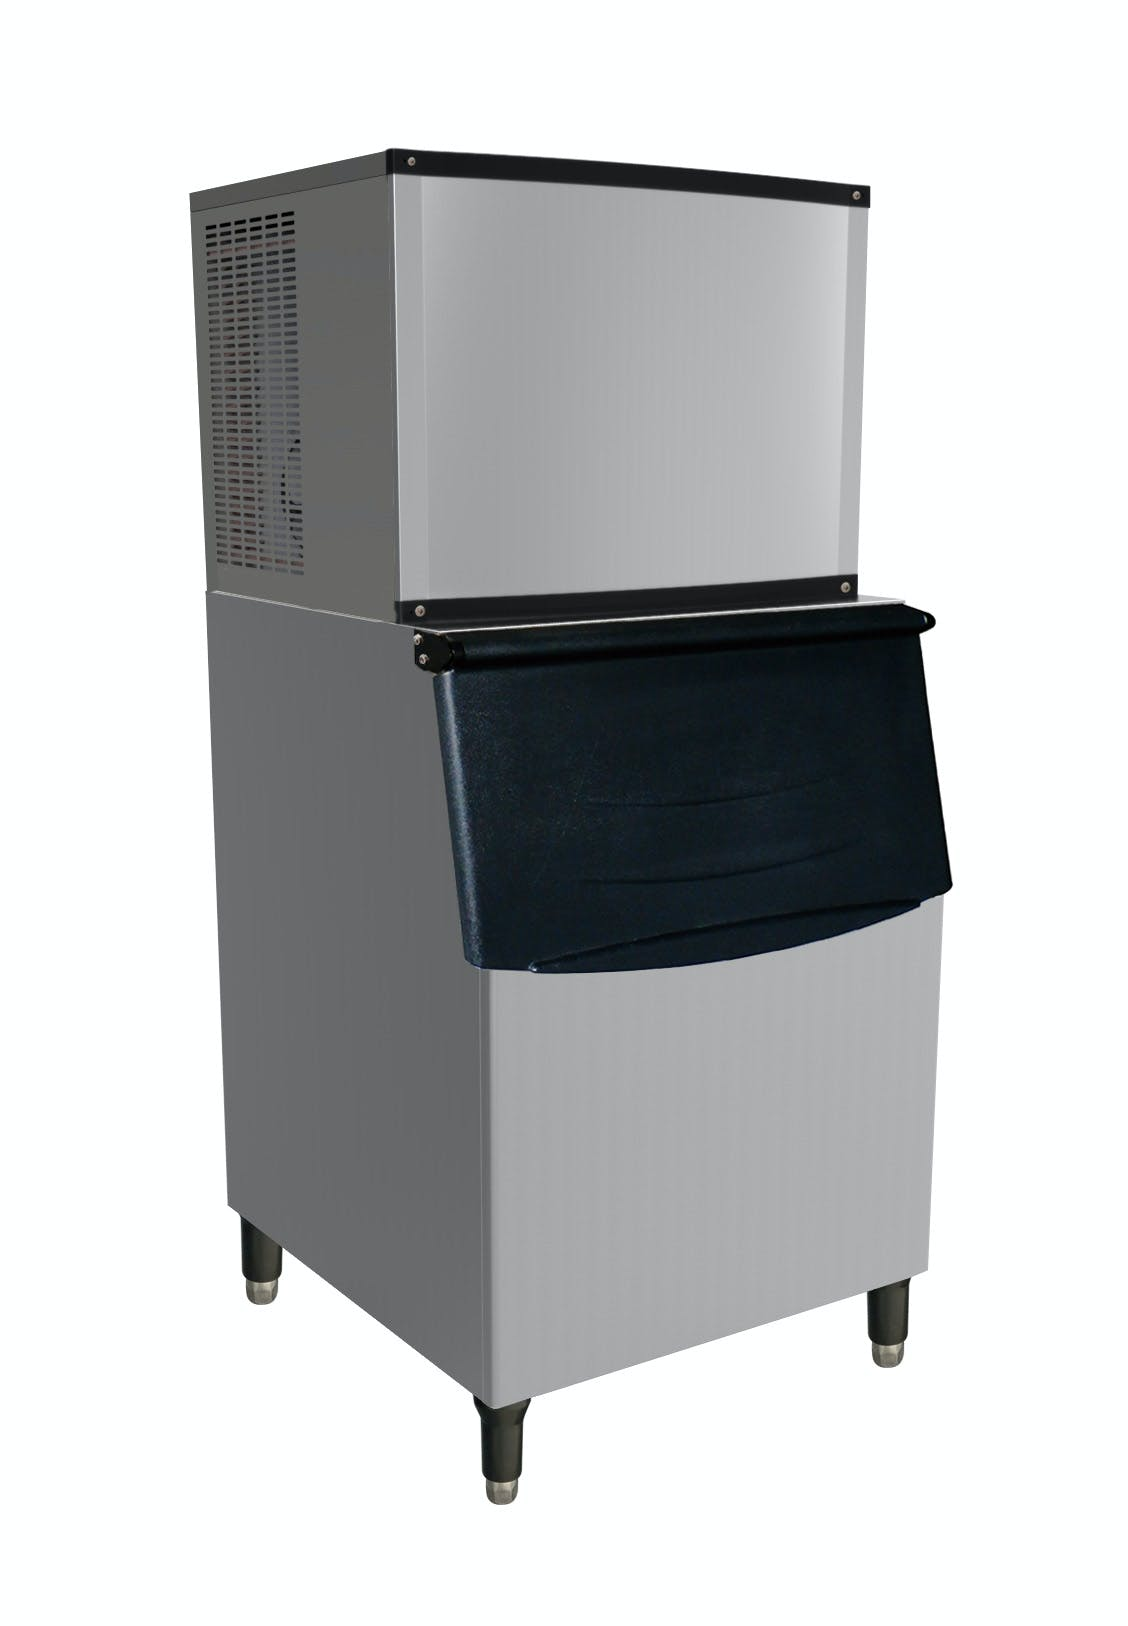 Valpro VPIM420 - 420 lbs. Full Cube Ice Maker - Air Cooled - 244 lbs. Ice Bin Included - sold by WALKINCOOLER WAREHOUSE